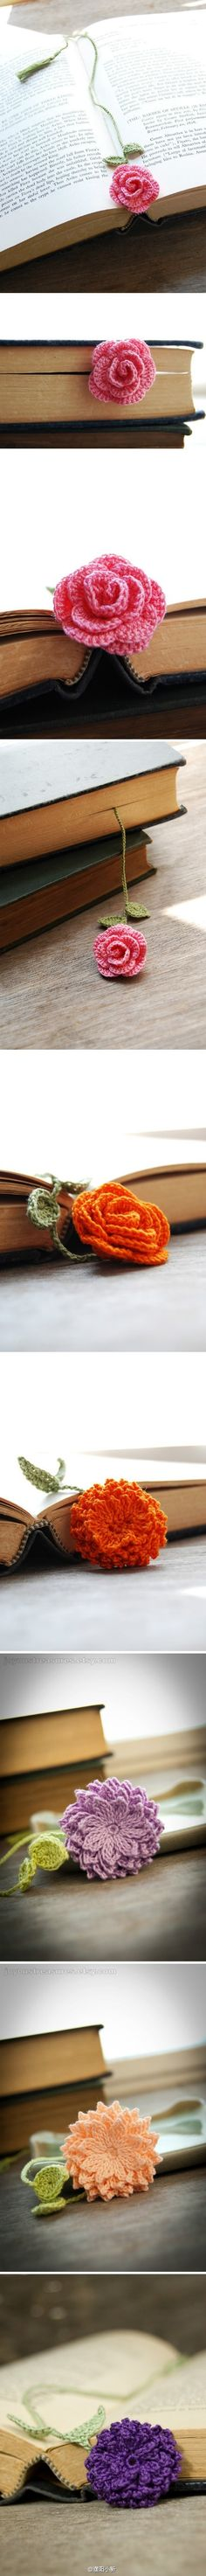 Pretty bookmarks - crochet flowers (but no pattern that I can see). Too bad there is no pattern. I don't crochet, but I sure would love for my crochet friends to make me one! Marque-pages Au Crochet, Crochet Amigurumi, Love Crochet, Crochet Crafts, Yarn Crafts, Beautiful Crochet, Crochet Flower Patterns, Crochet Flowers, Knitting Patterns